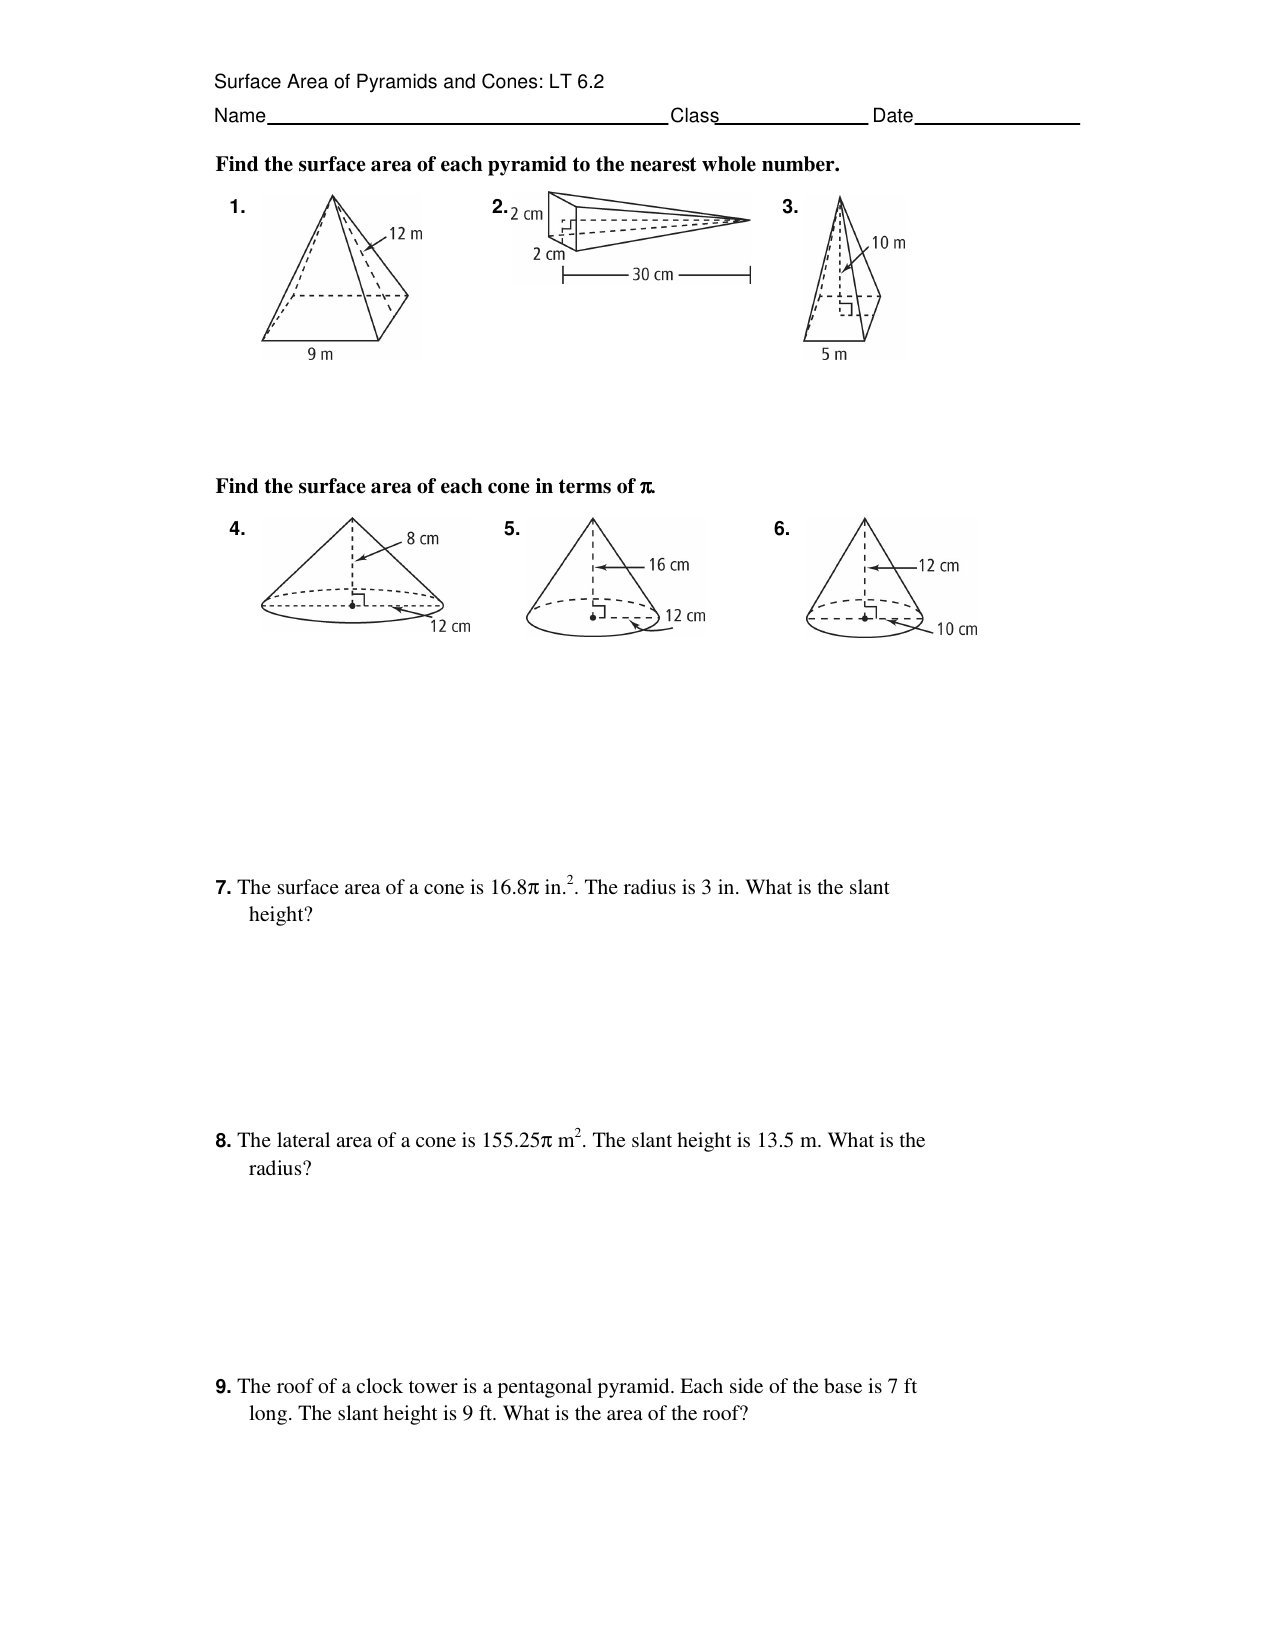 Find the surface area of each pyramid to the nearest whole